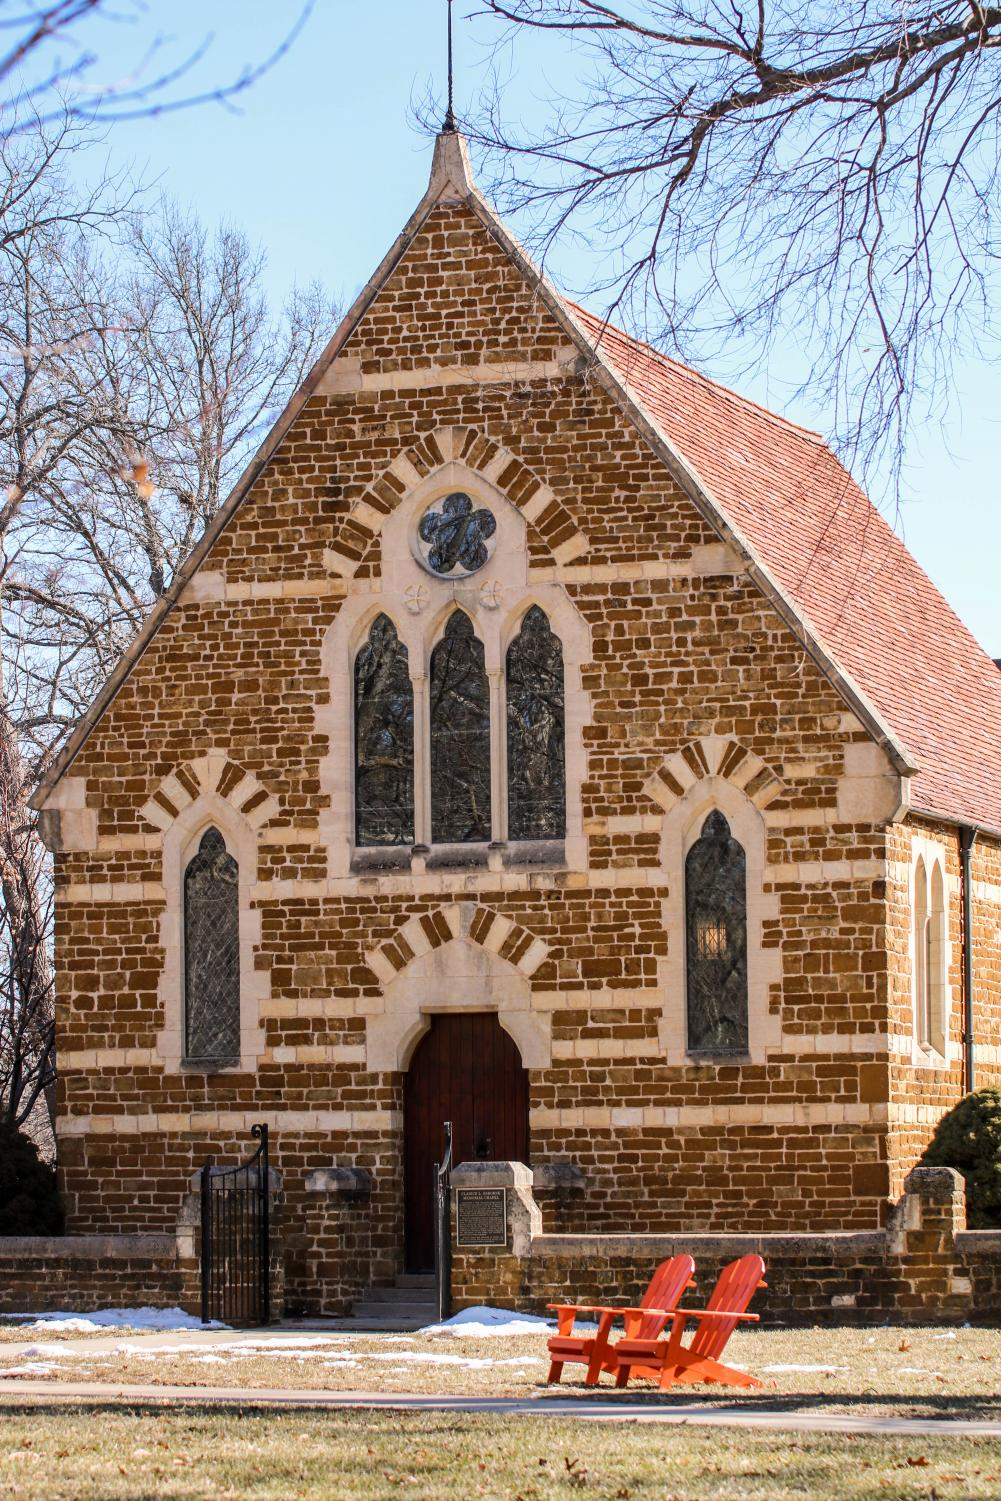 The University Chapel holds services every Thursday at 11 a.m.